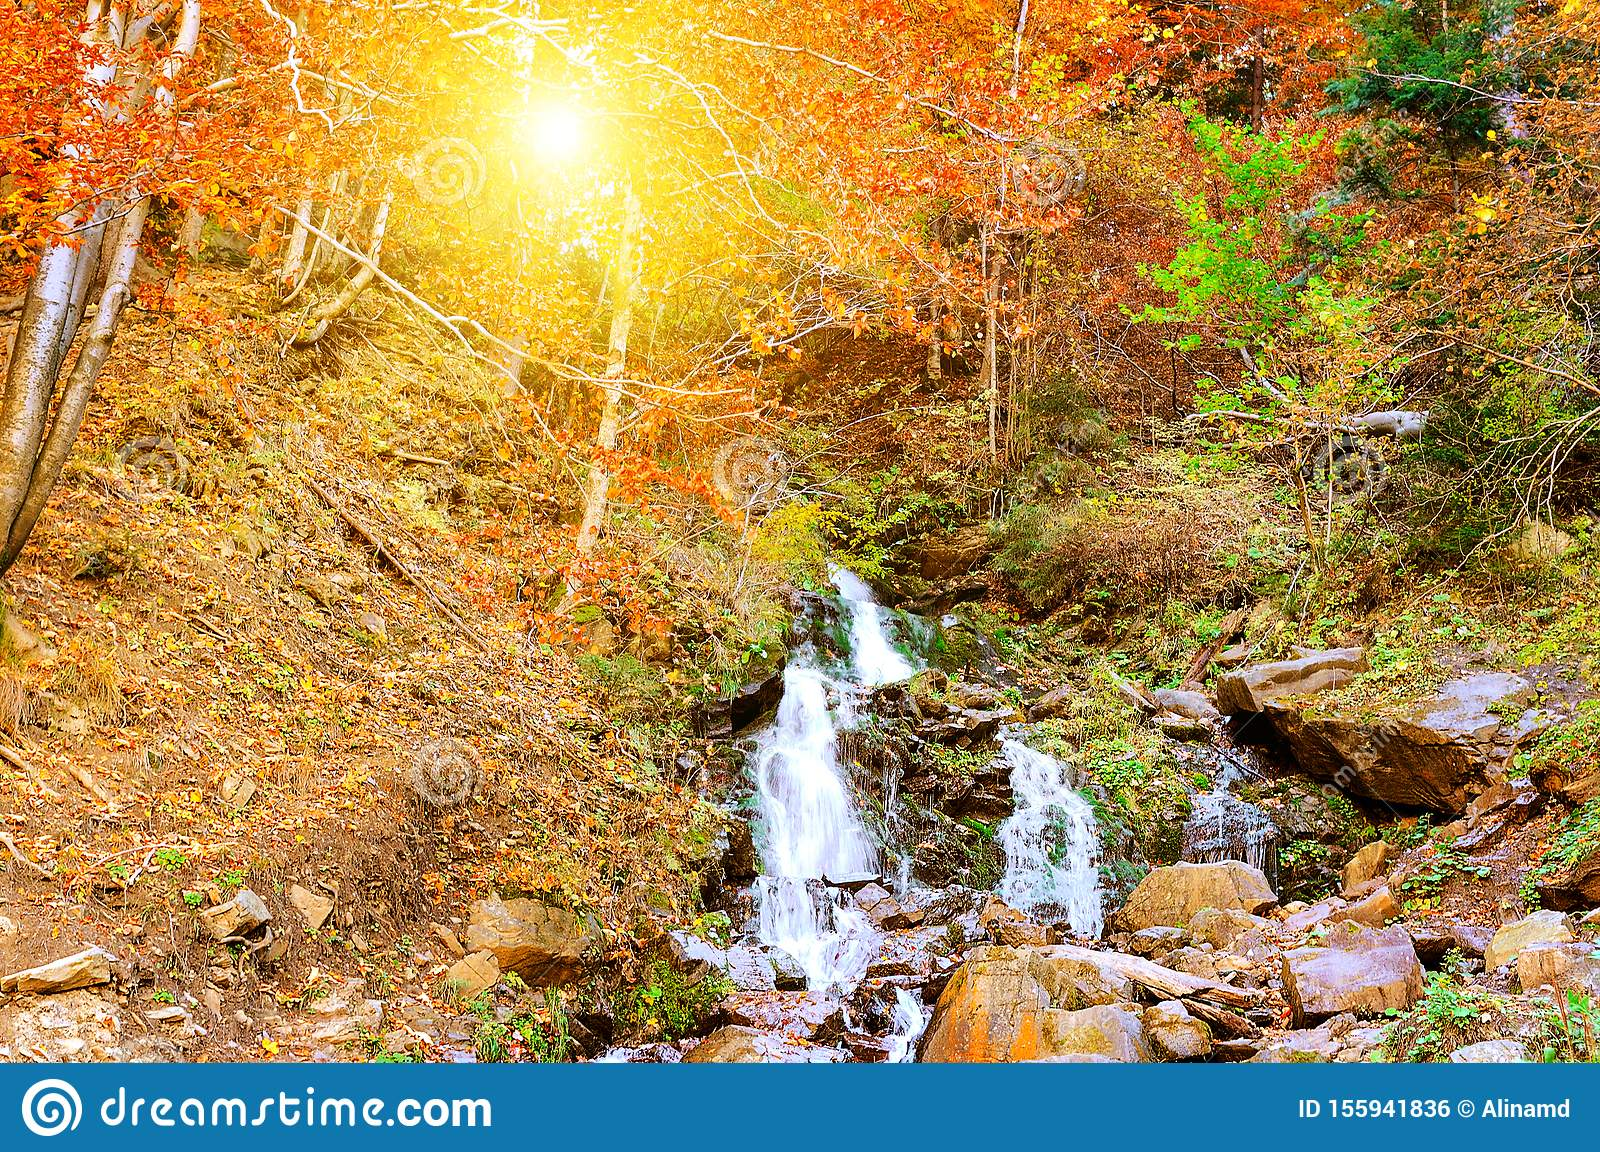 8x6.5ft Autumn Mountain Landscape Background Spectacular Waterfall Polyester Photography Backdrops Yellow Leaves Blue Water Beautiful Natural Scenery Wedding Photo Studio Props Postcard